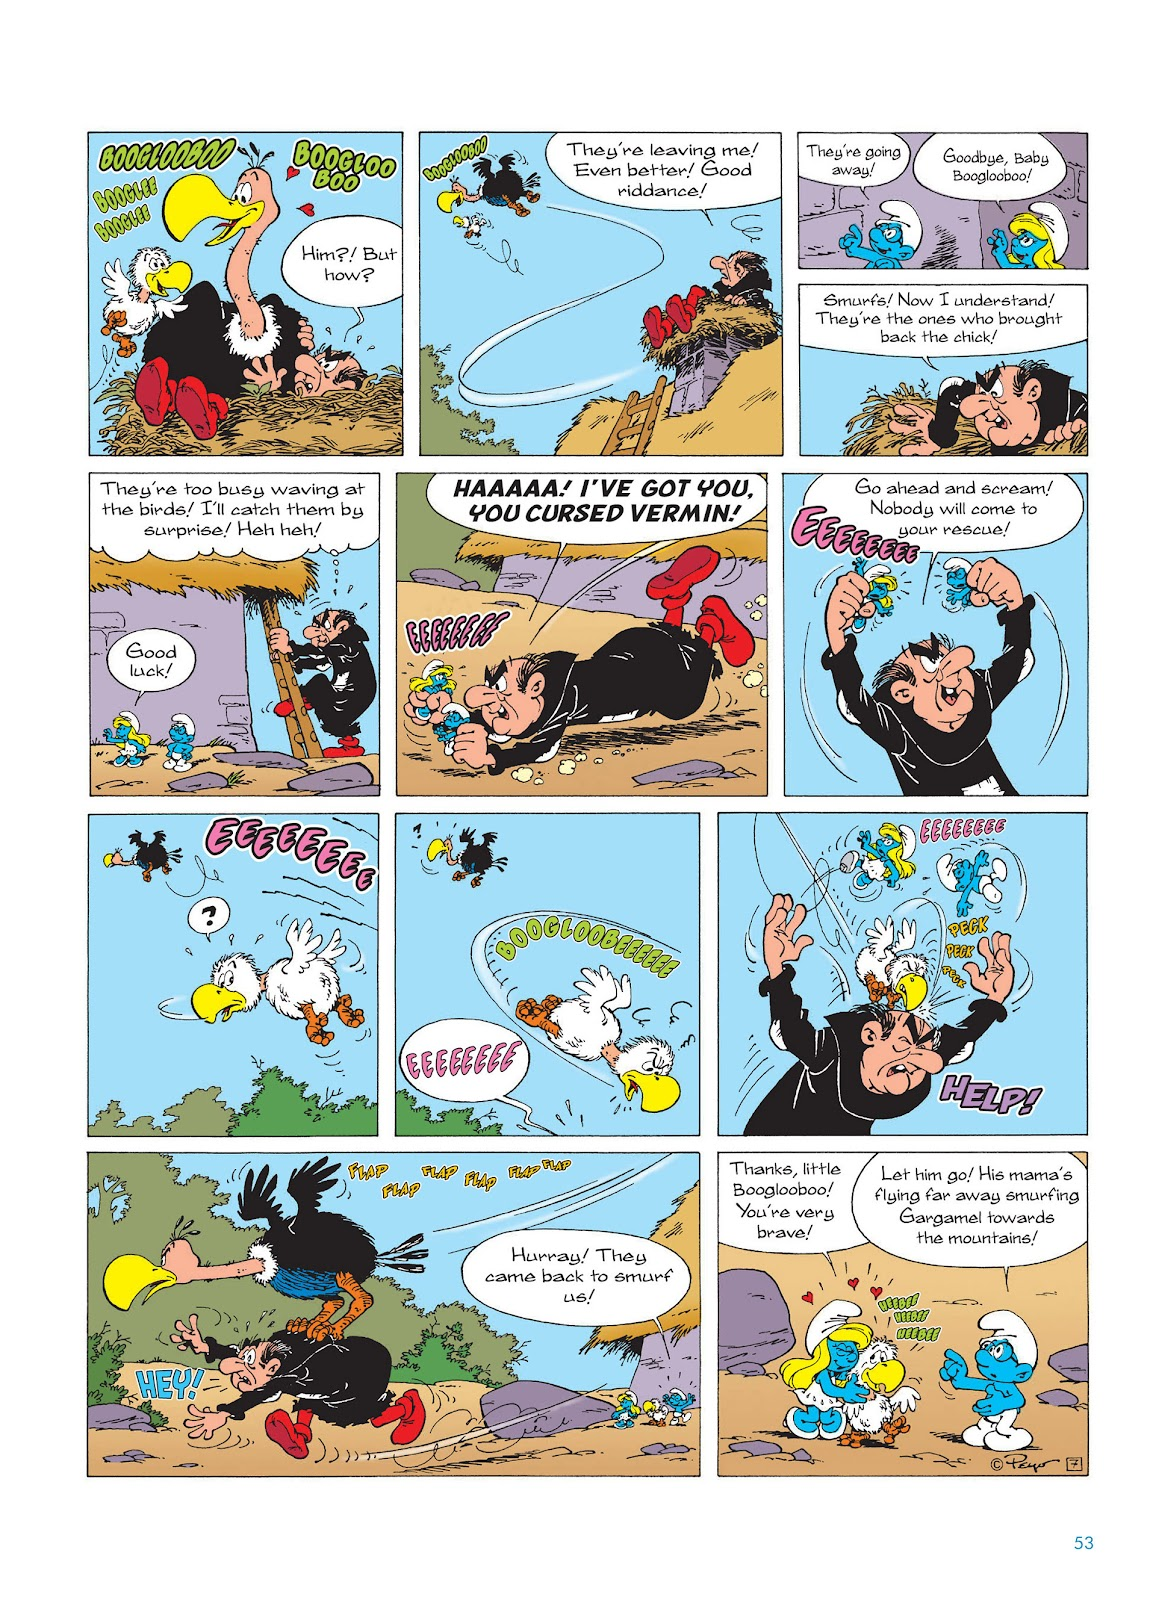 Read online The Smurfs comic -  Issue #15 - 54